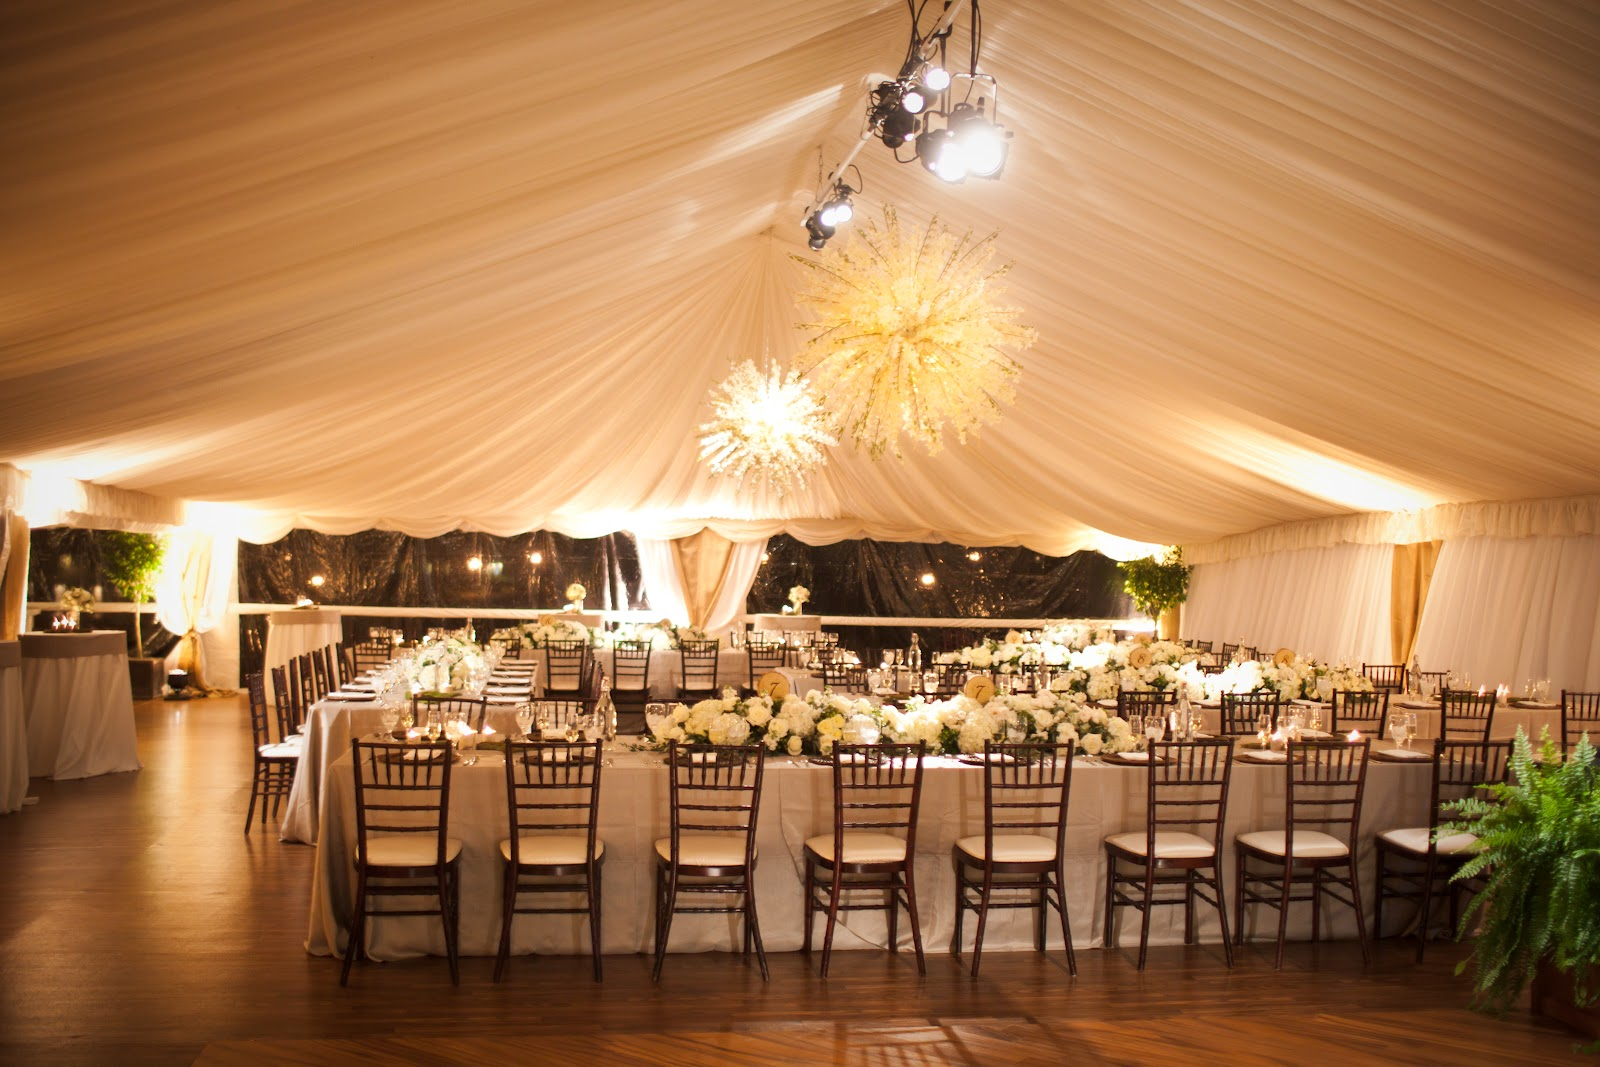 Hiring of Tents Affinity Events - Tent Hire Johannesburg & Tent Hire Johannesburg - Take Your Party Anywhere